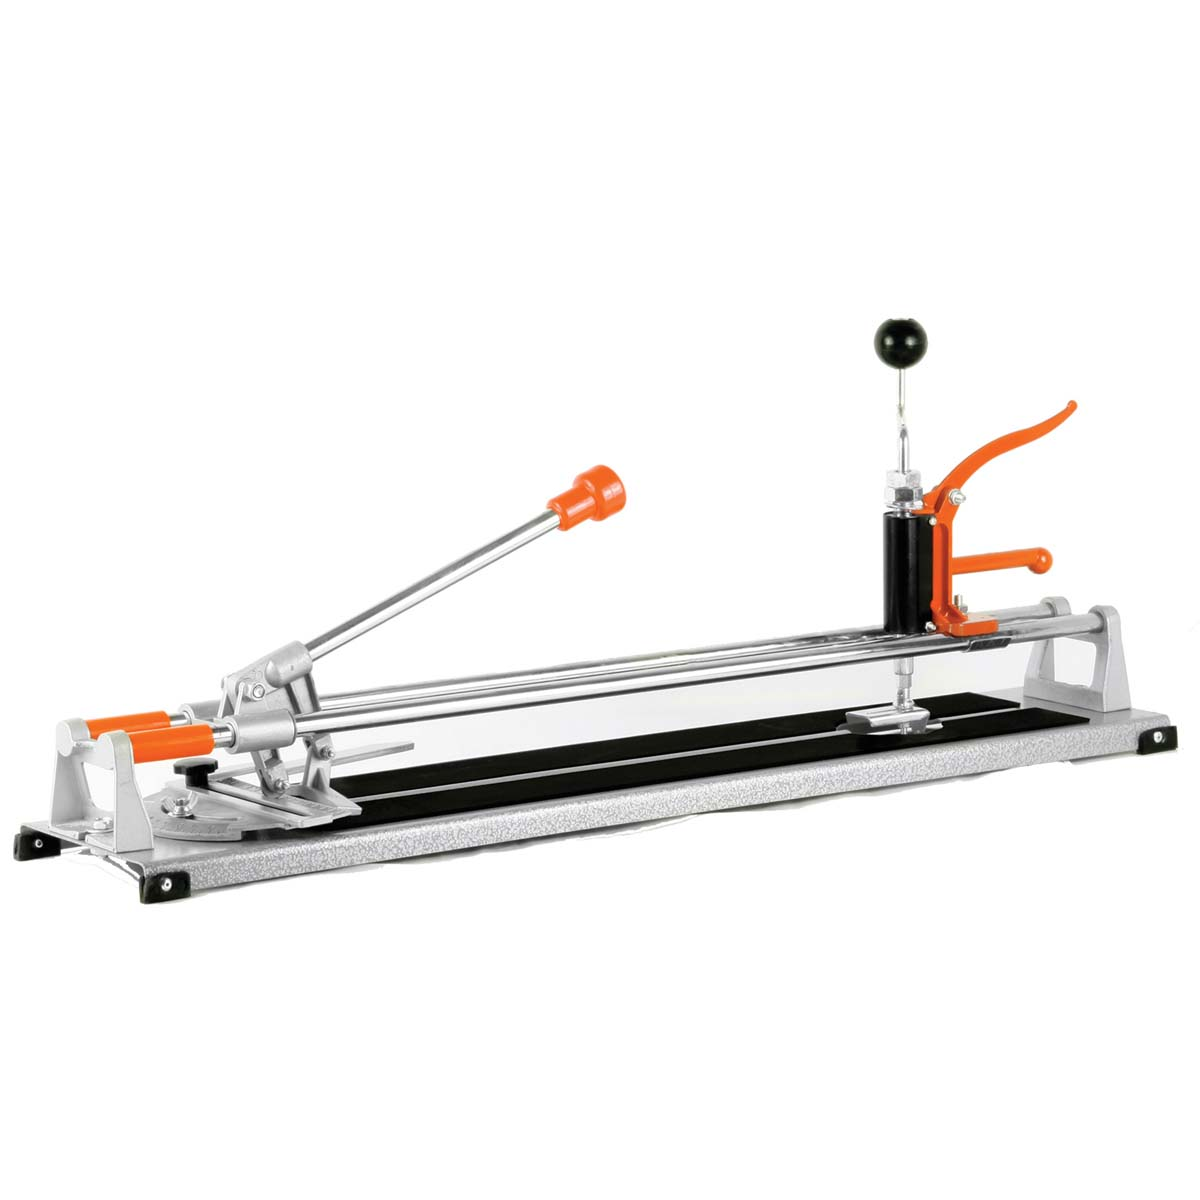 Tile Cutter 3 Function 400mm